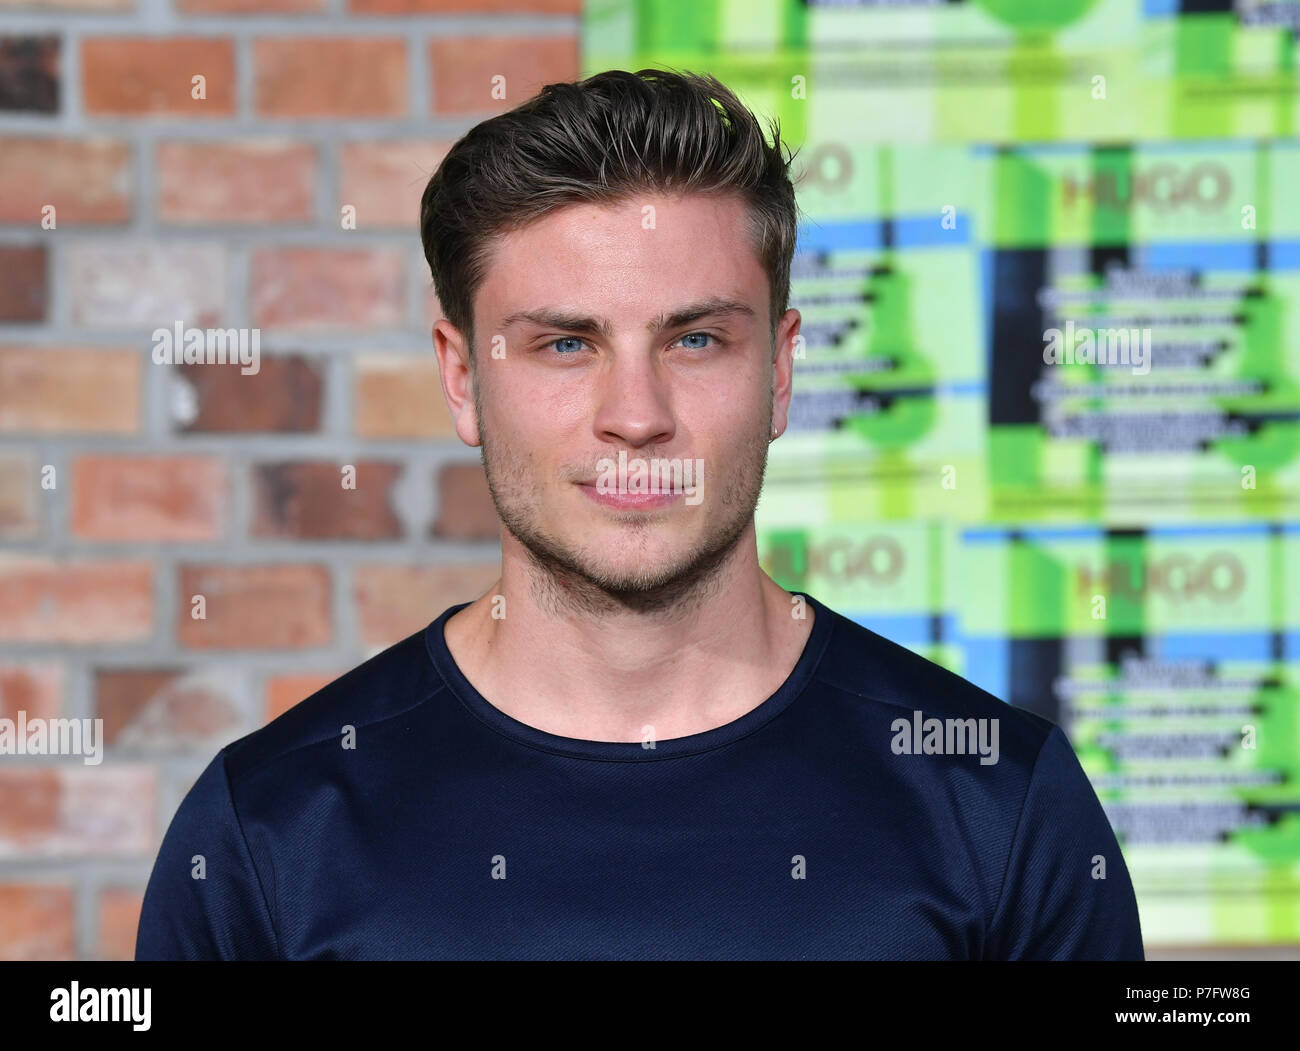 Berlin, Germany. 05th July, 2018. 05.07.2018, Berlin: Jannik Schumann arrives at the presentation of the HUGO Mens and Womens' Collection Spring/Summer 2019 at the Weissensee Motor Works. At the Berlin Fashion Week the collections for spring/summer 2019 will be presented. Photo: Jens Kalaene/dpa central image/dpa | usage worldwide Credit: dpa picture alliance/Alamy Live News Stock Photo